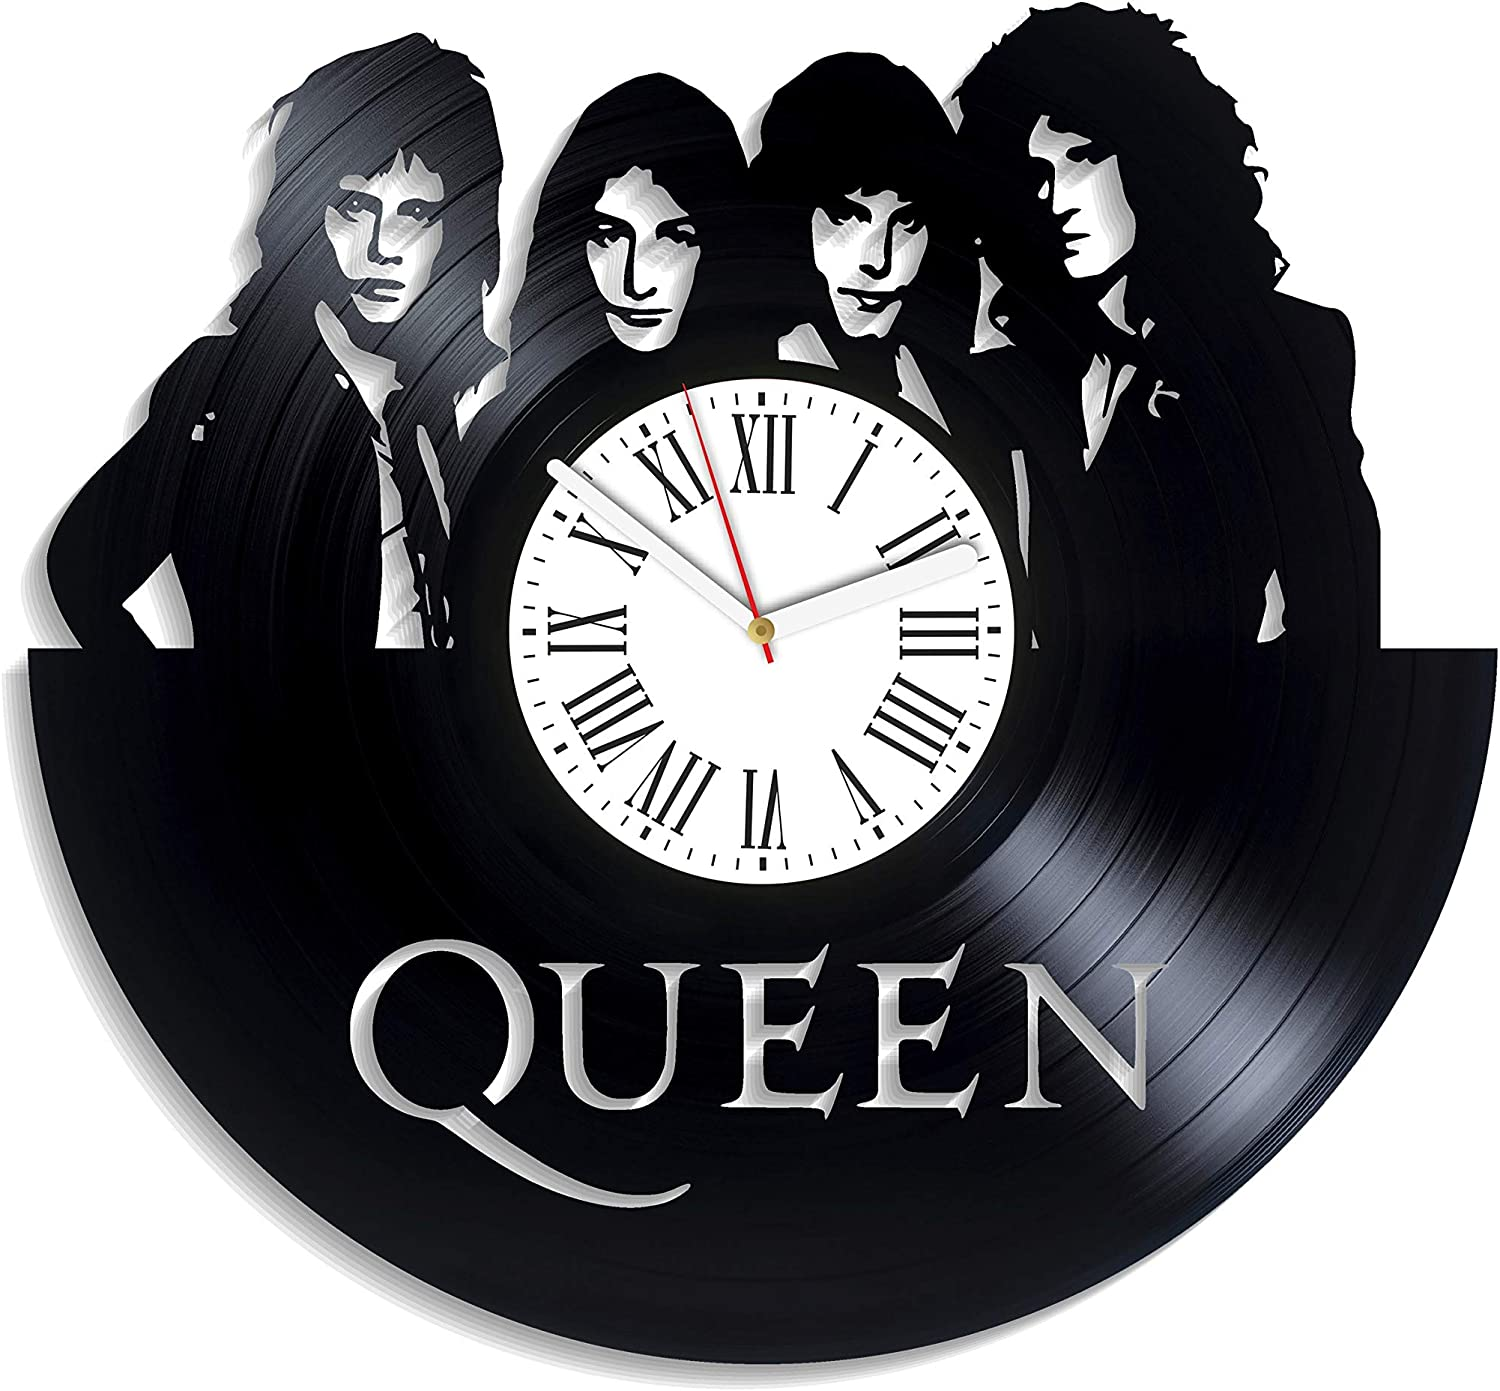 Kovides Queen Rock Music Band Home Decor We Will Rock You Queen Wall Clock Minimalist Decor for Living Room Birthday Gift for Fan Queen Music Vintage Vinyl Record Clock